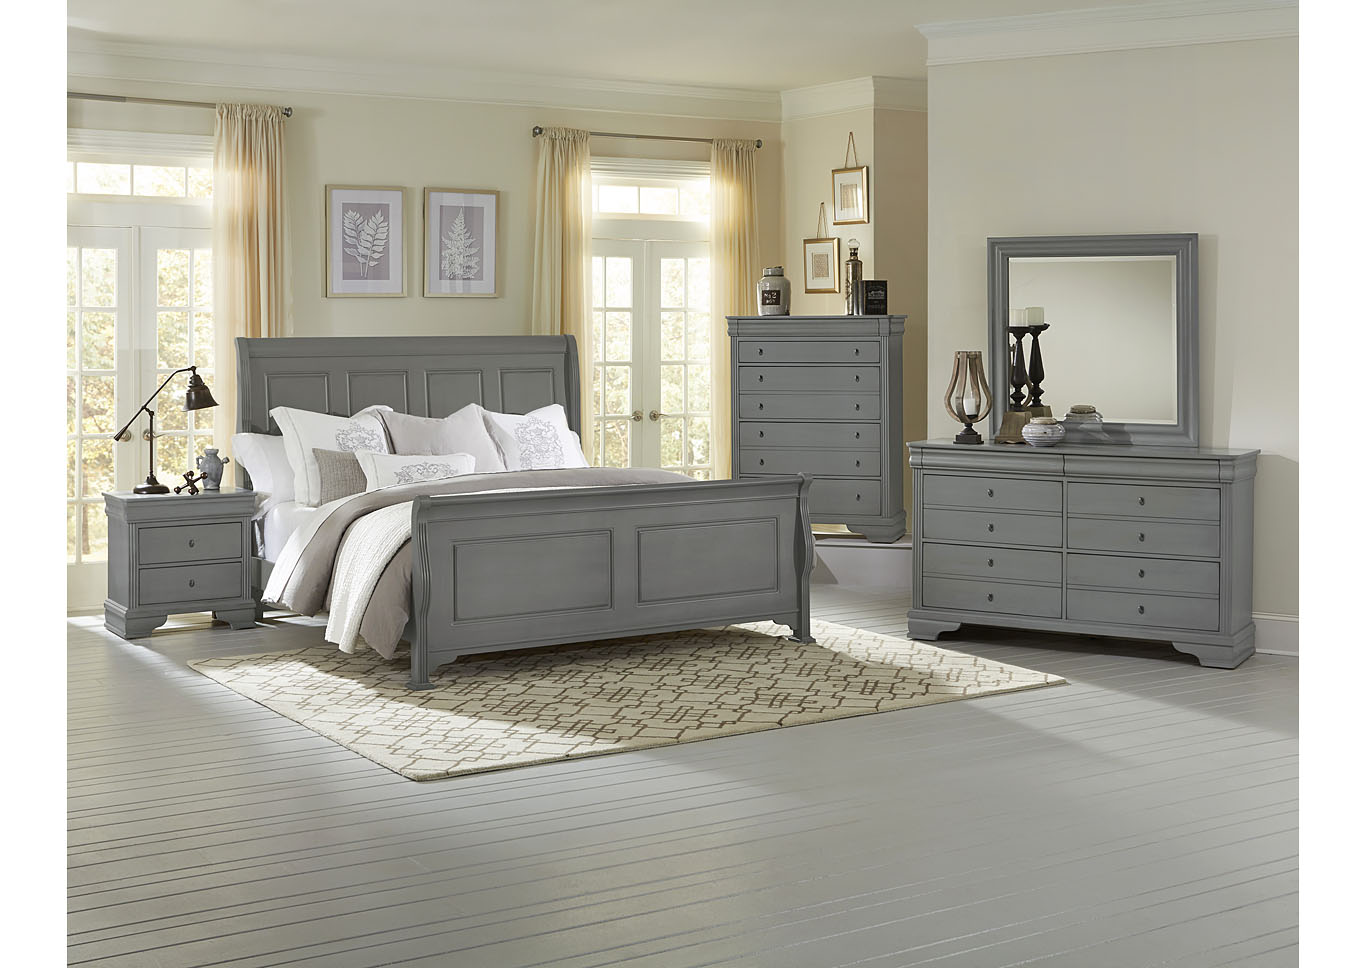 French Market Zinc King Poster Bed w/ Dresser, Mirror and Nightstand,Vaughan-Bassett